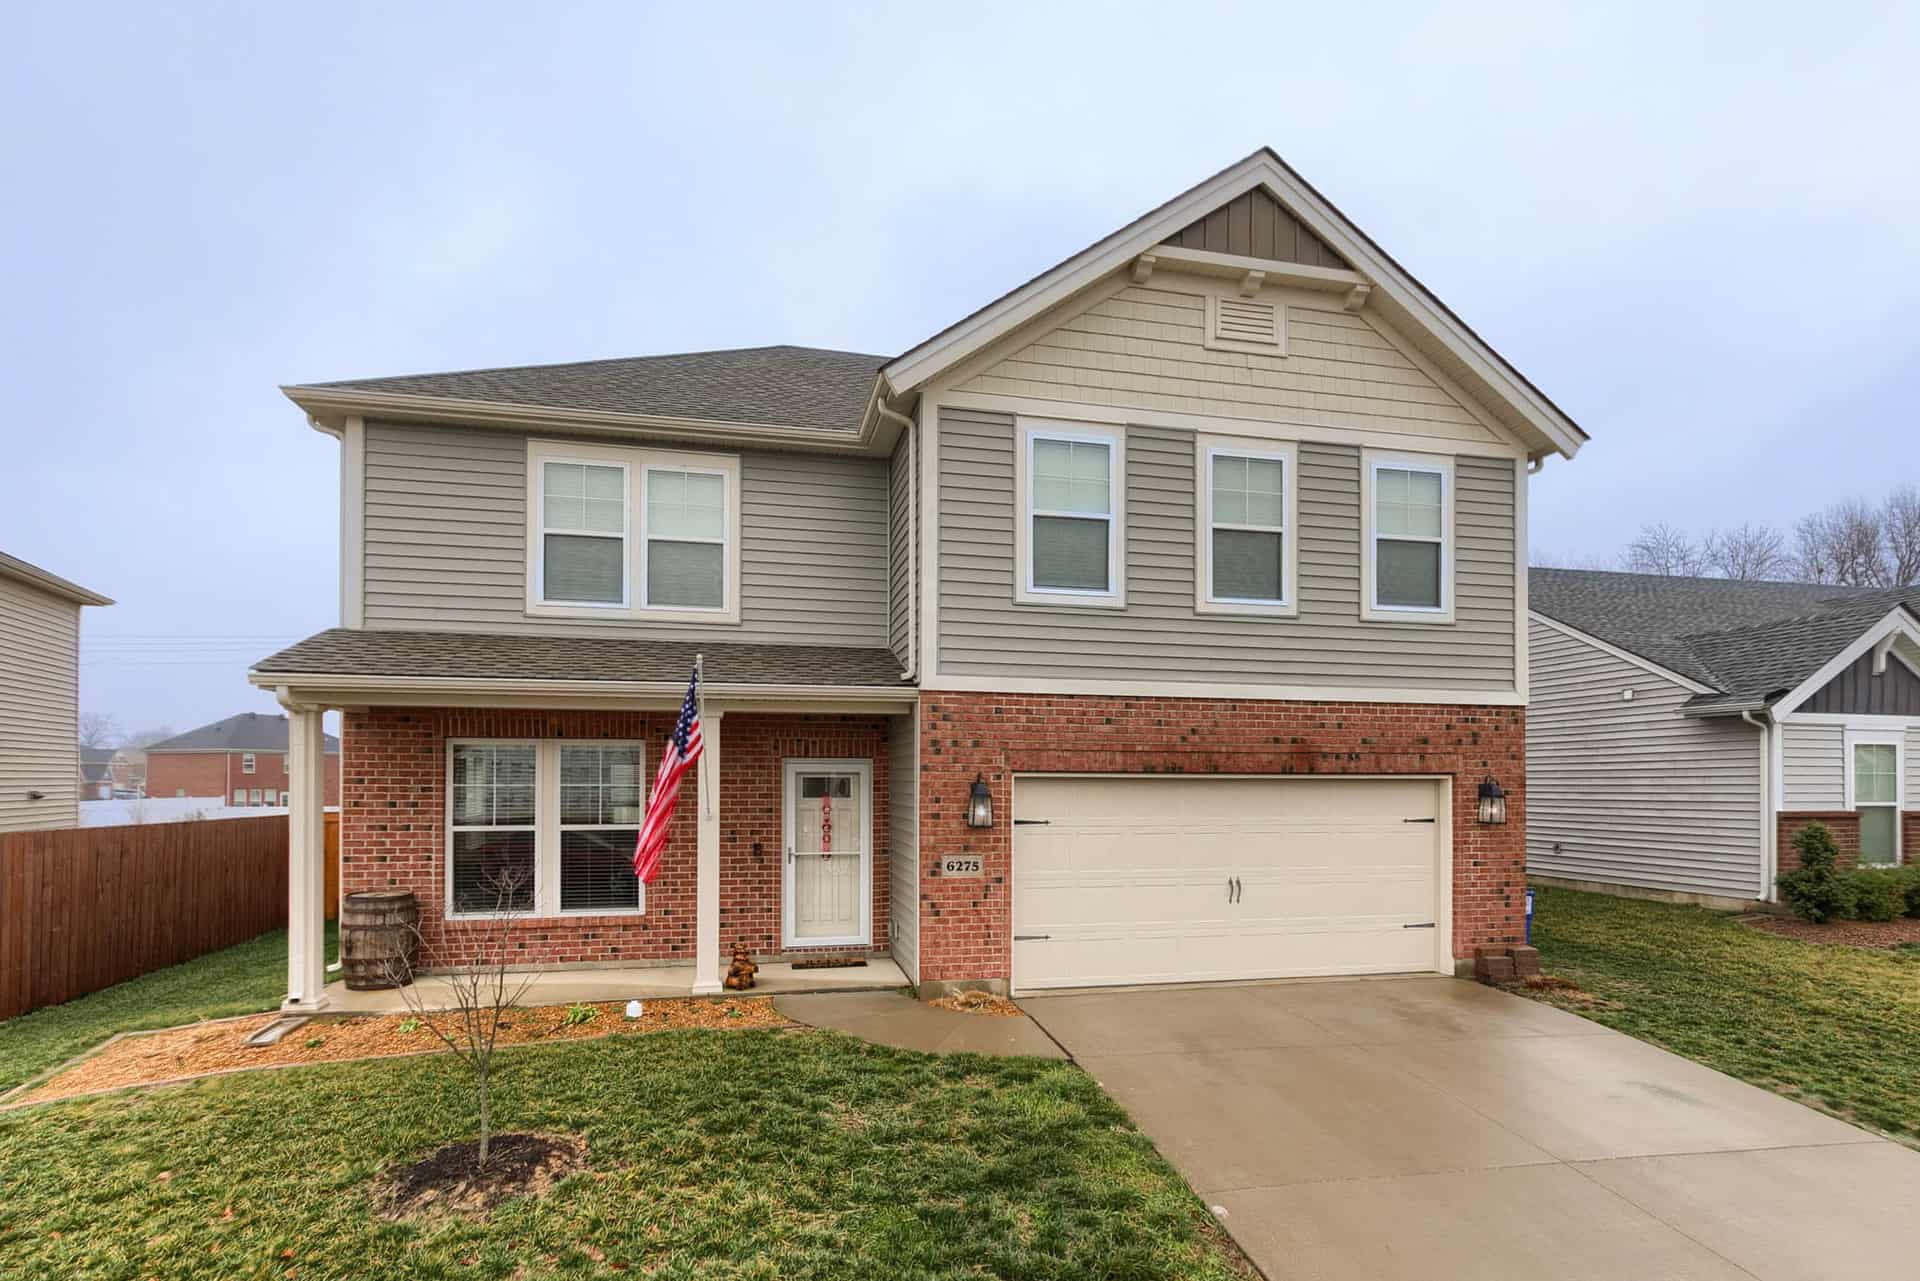 6275 Valley Brook Trace, Utica, KY 42376